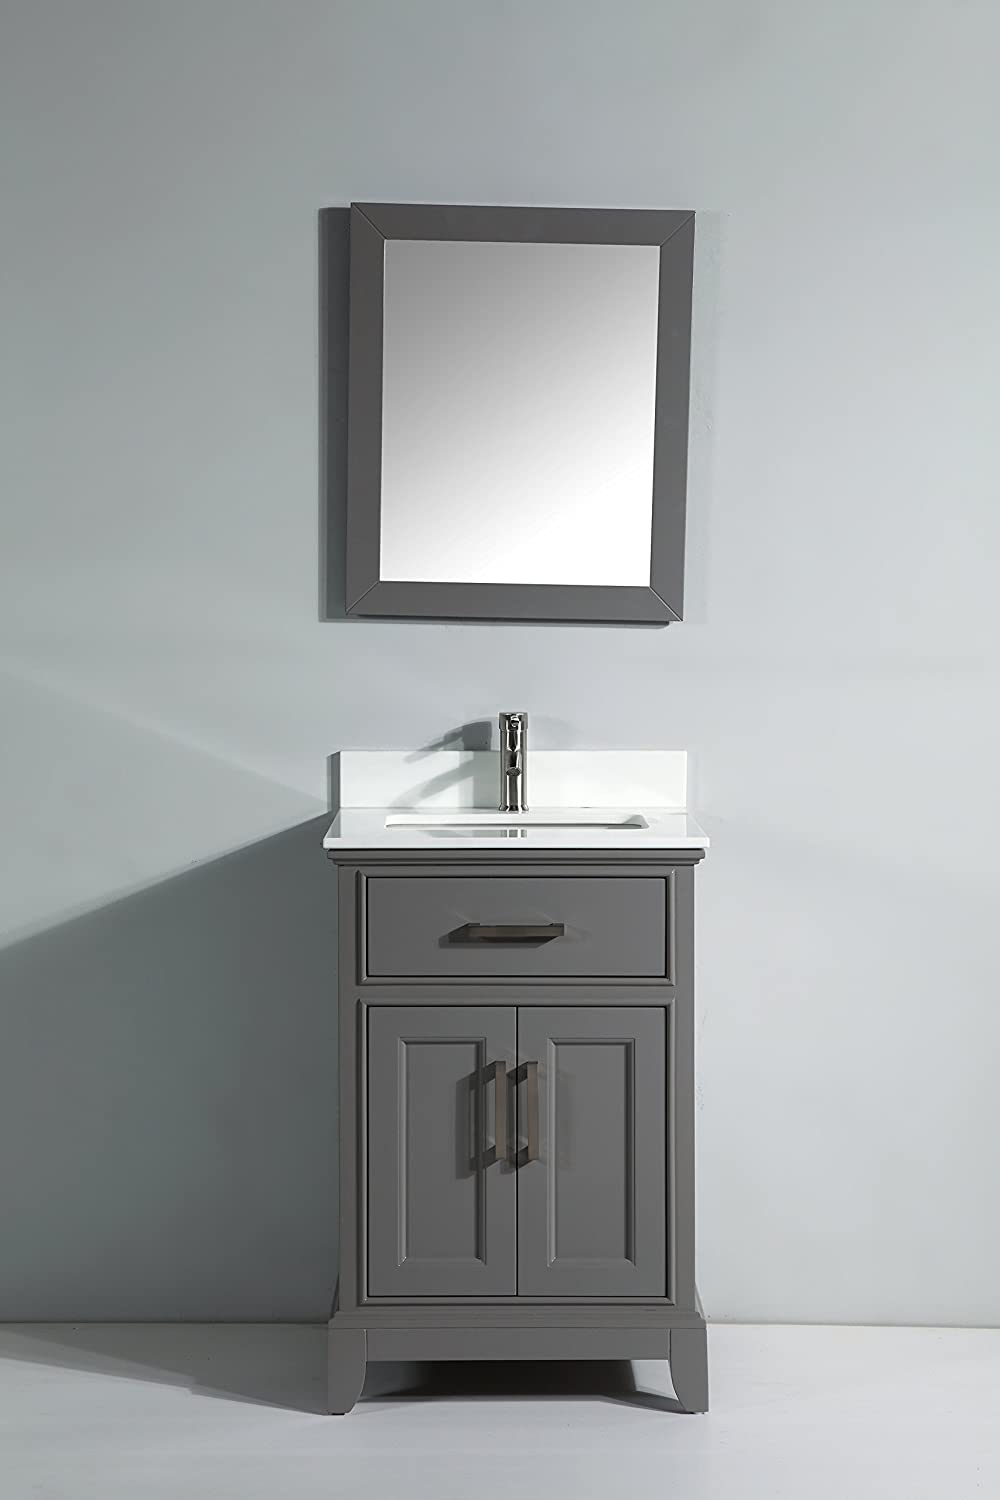 bathroom vanity set. Vanity Art 24  Single Sink Bathroom Set with super White Phoenix Stone Free Mirror VA1024 G Amazon com